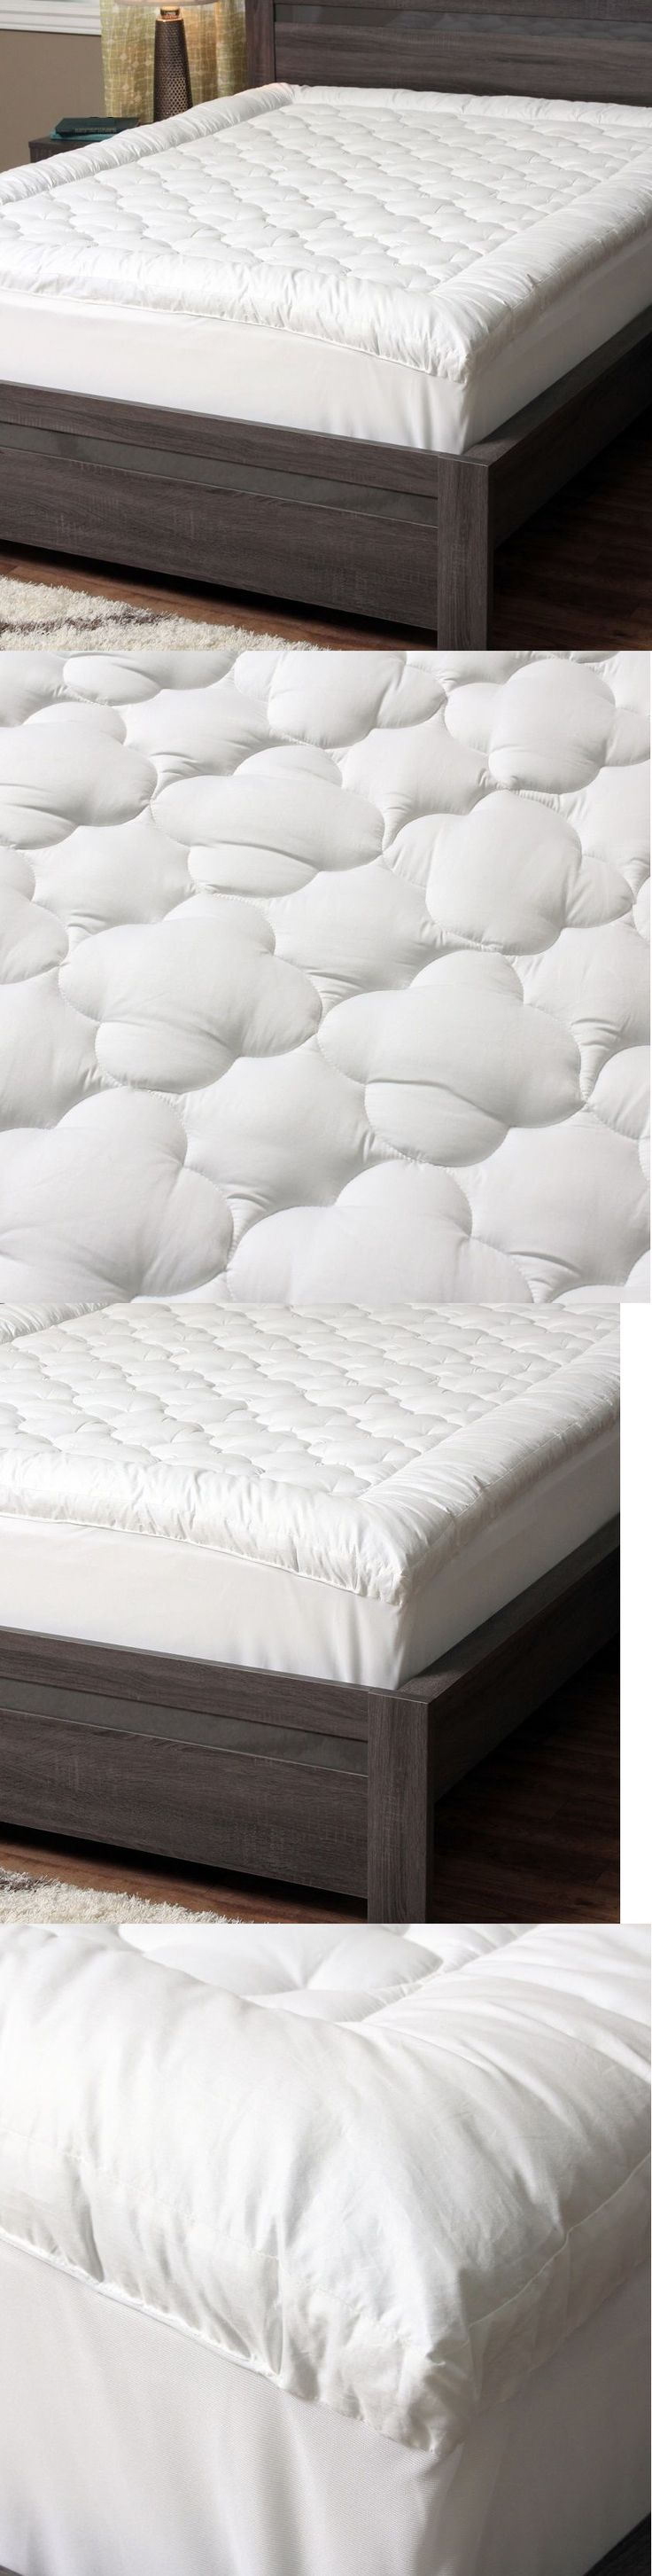 Mattress Pads and Feather Beds 175751: Pillow Top Mattress Topper Queen Size  Pad Hypoallergenic Cover